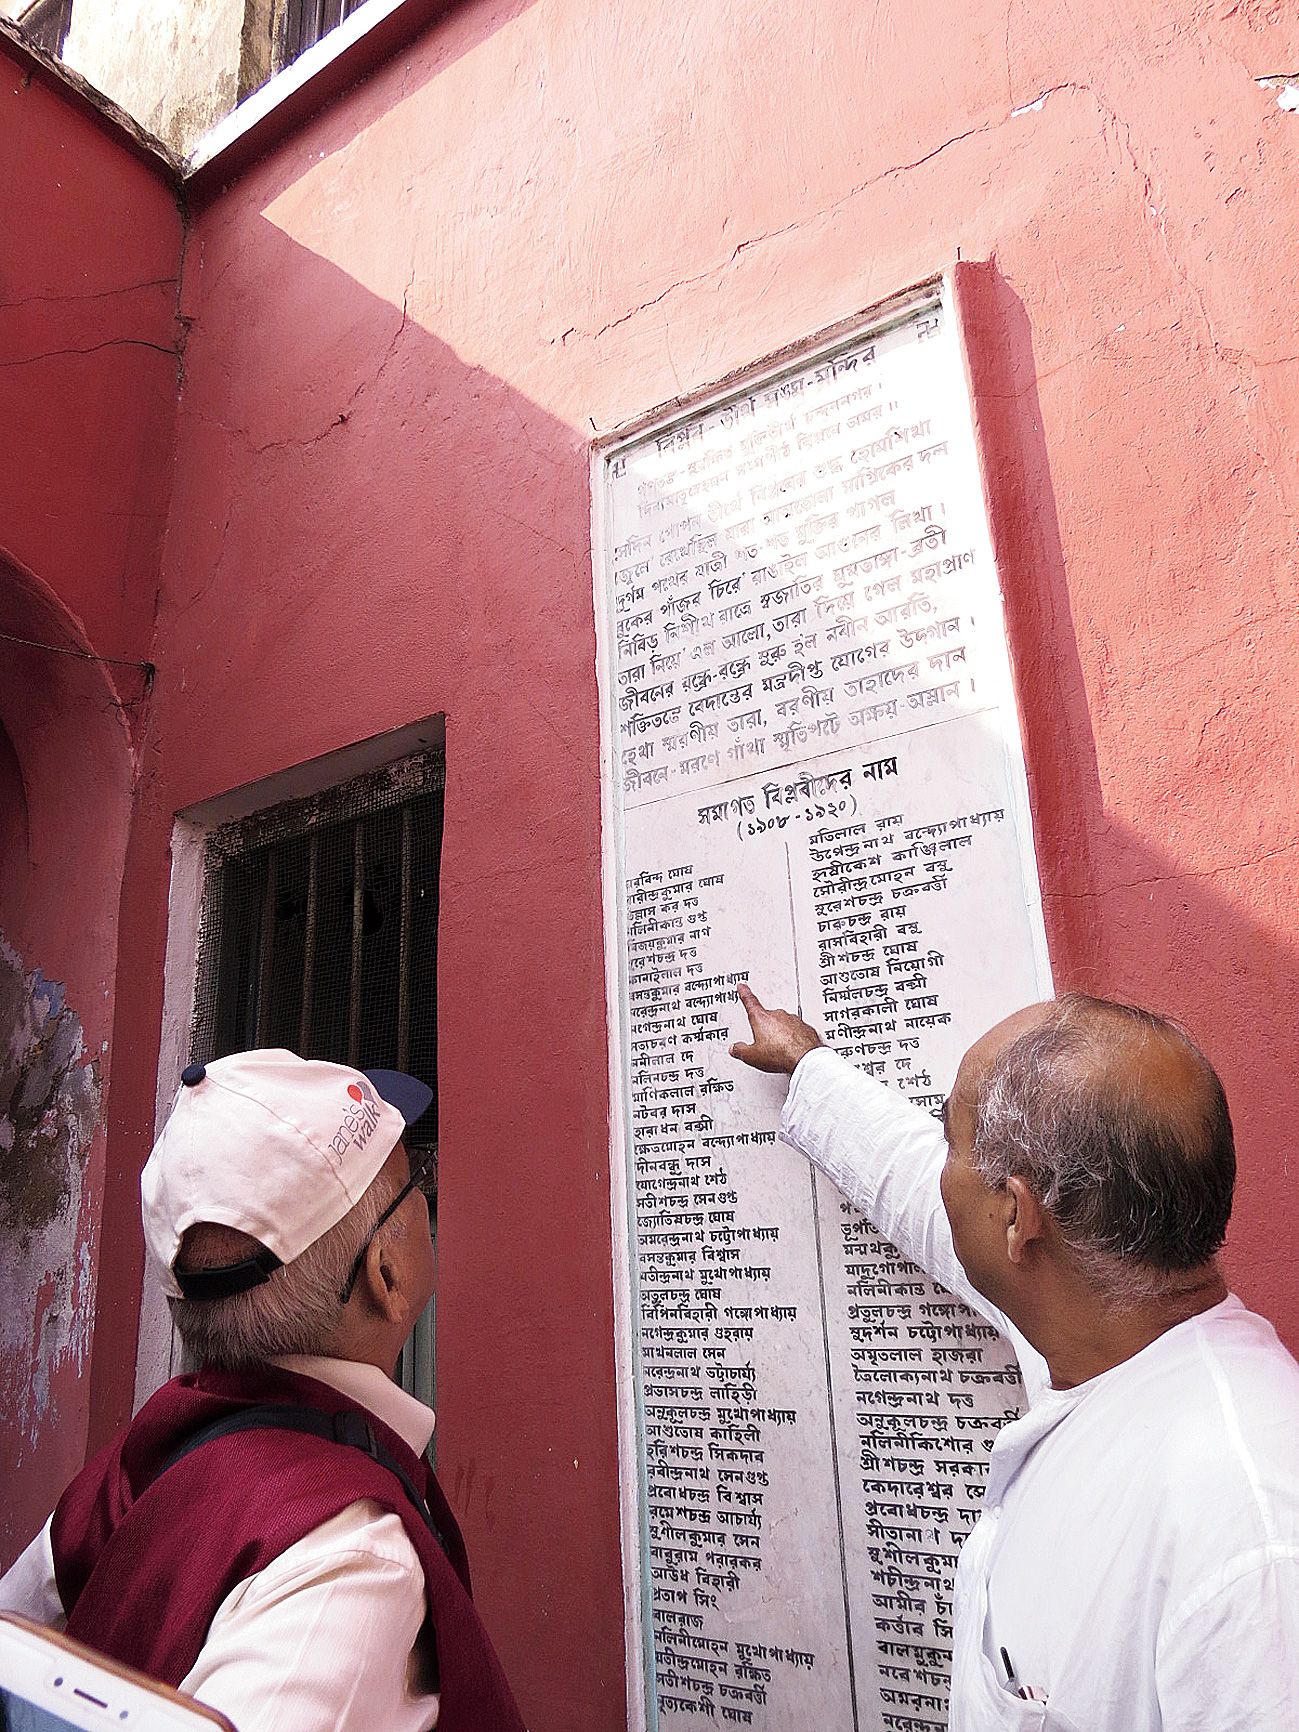 The list of revolutionaries associated with Prabartak Sangha, starting with Aurobindo Ghose